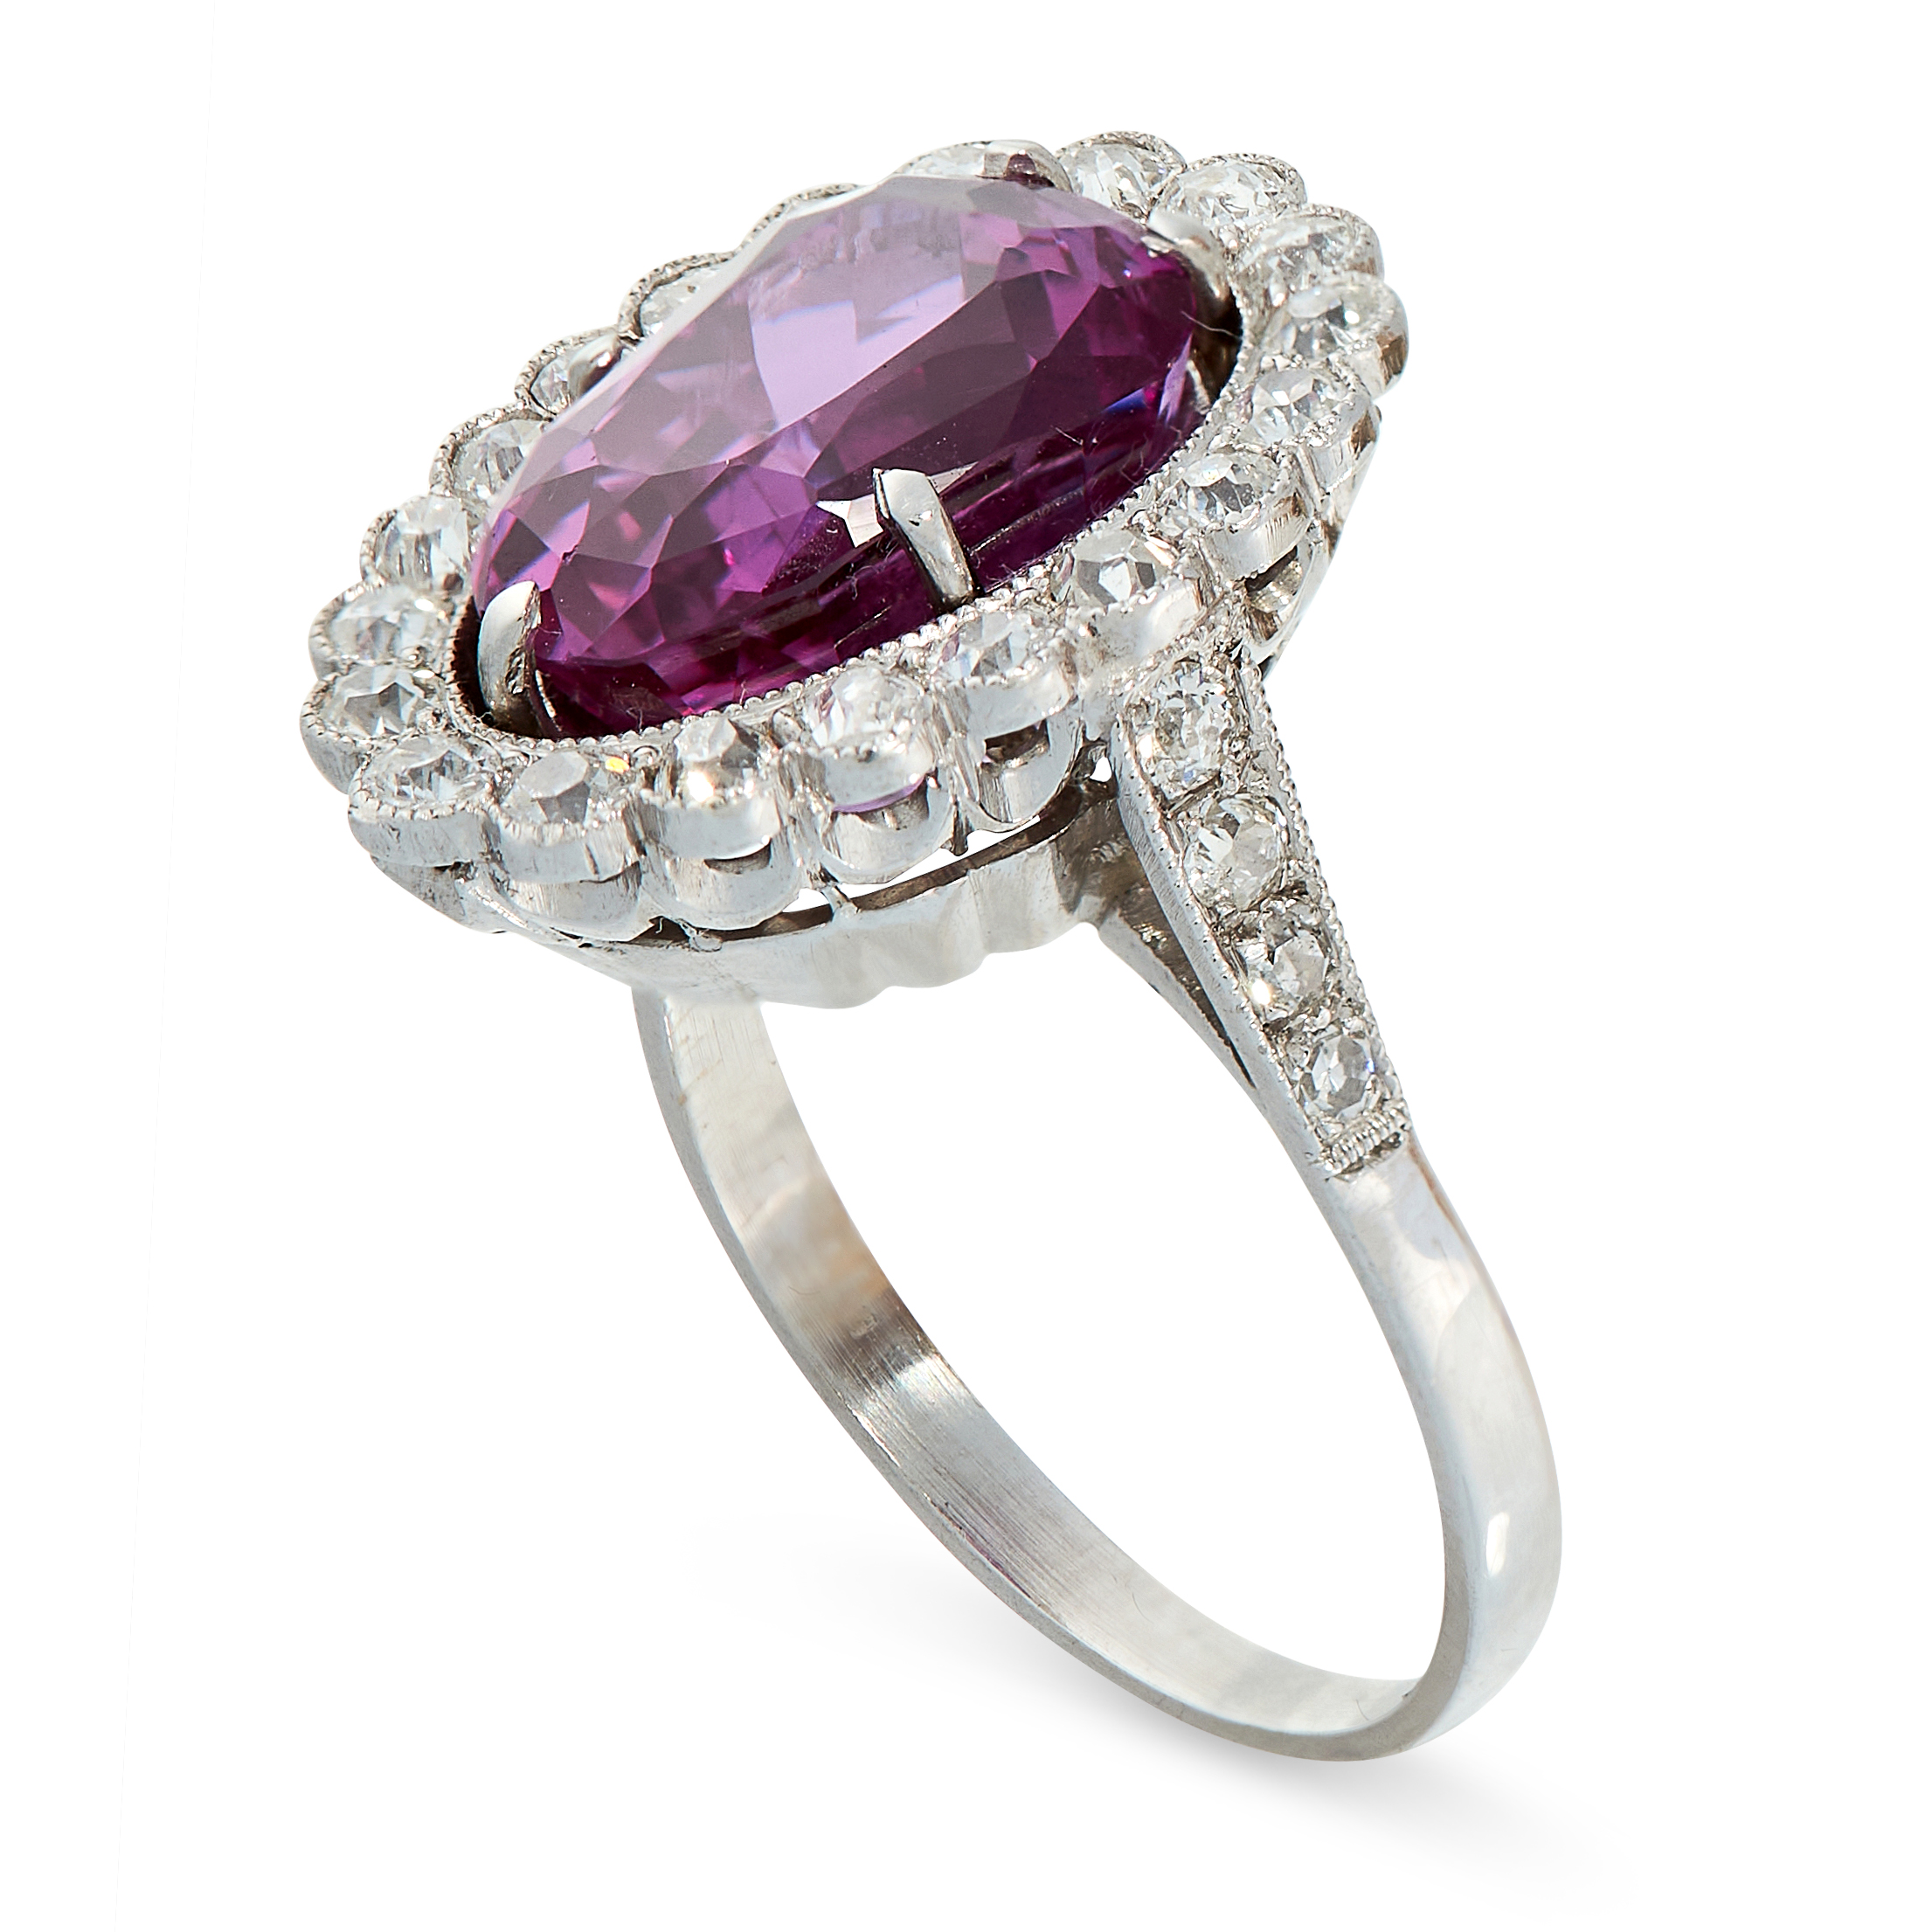 CEYLON NO HEAT PINK SAPPHIRE AND DIAMOND RING in cluster form, set with a pear cut pink sapphire - Image 2 of 2